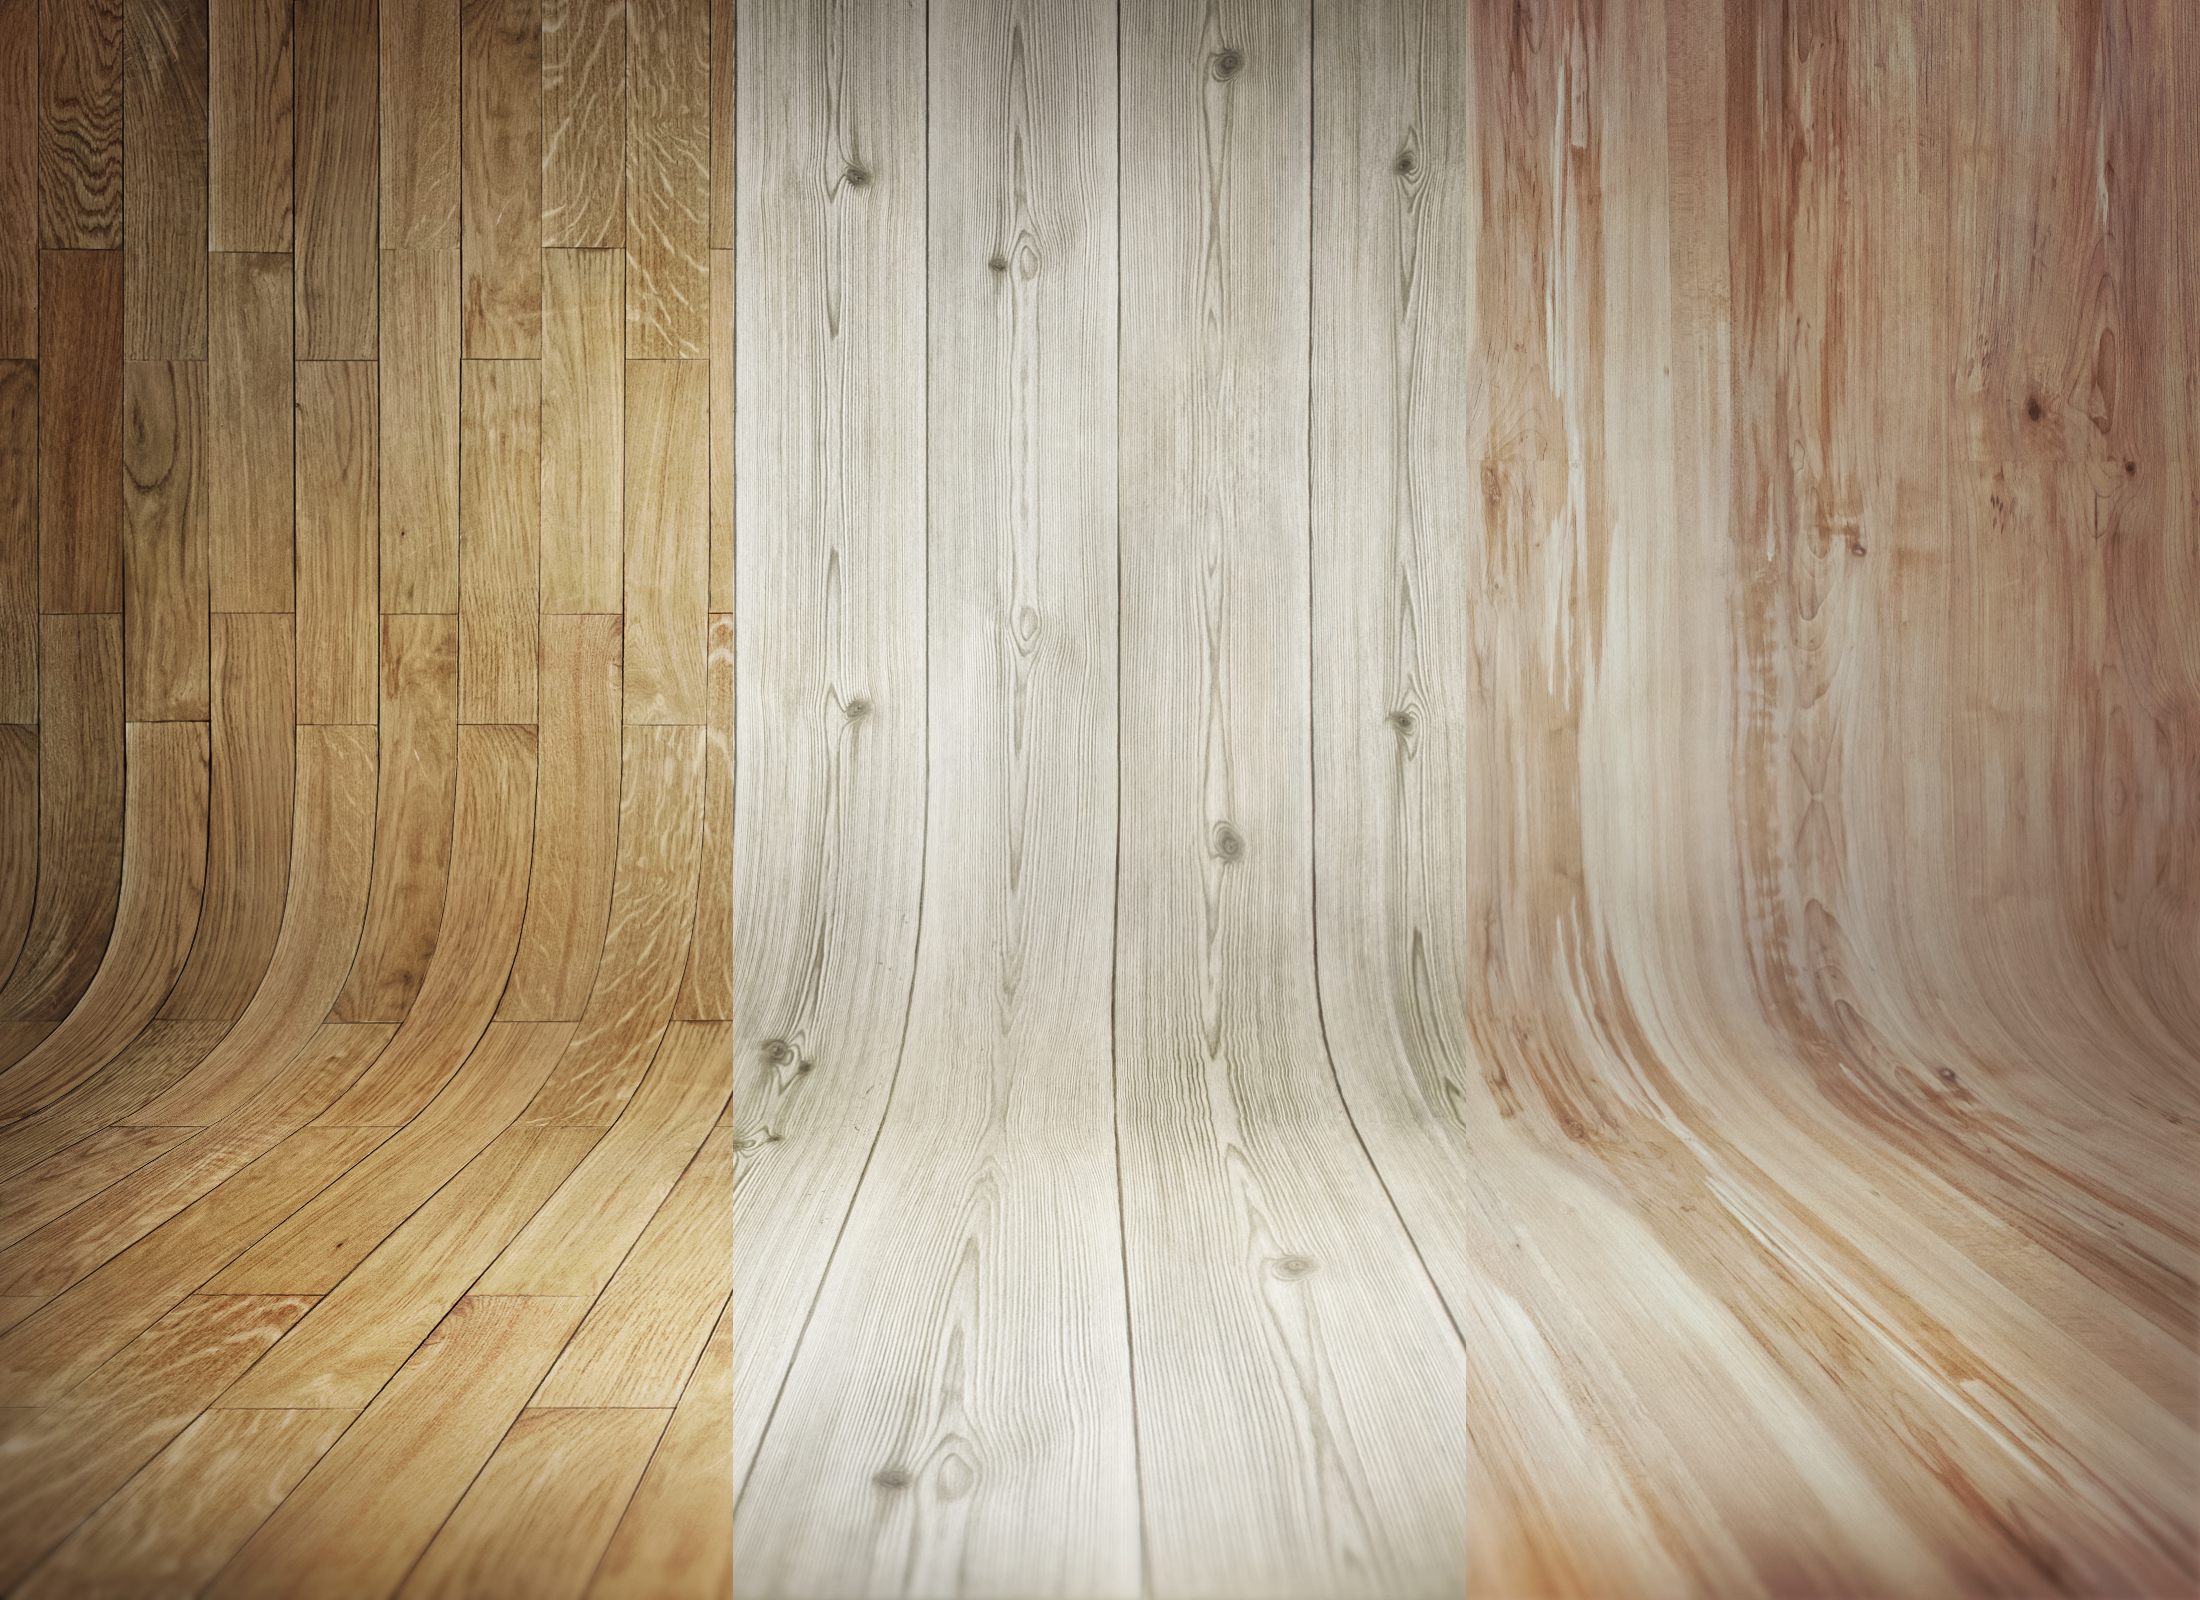 3 Curved Wooden Backdrops Vol 1 Graphicburger